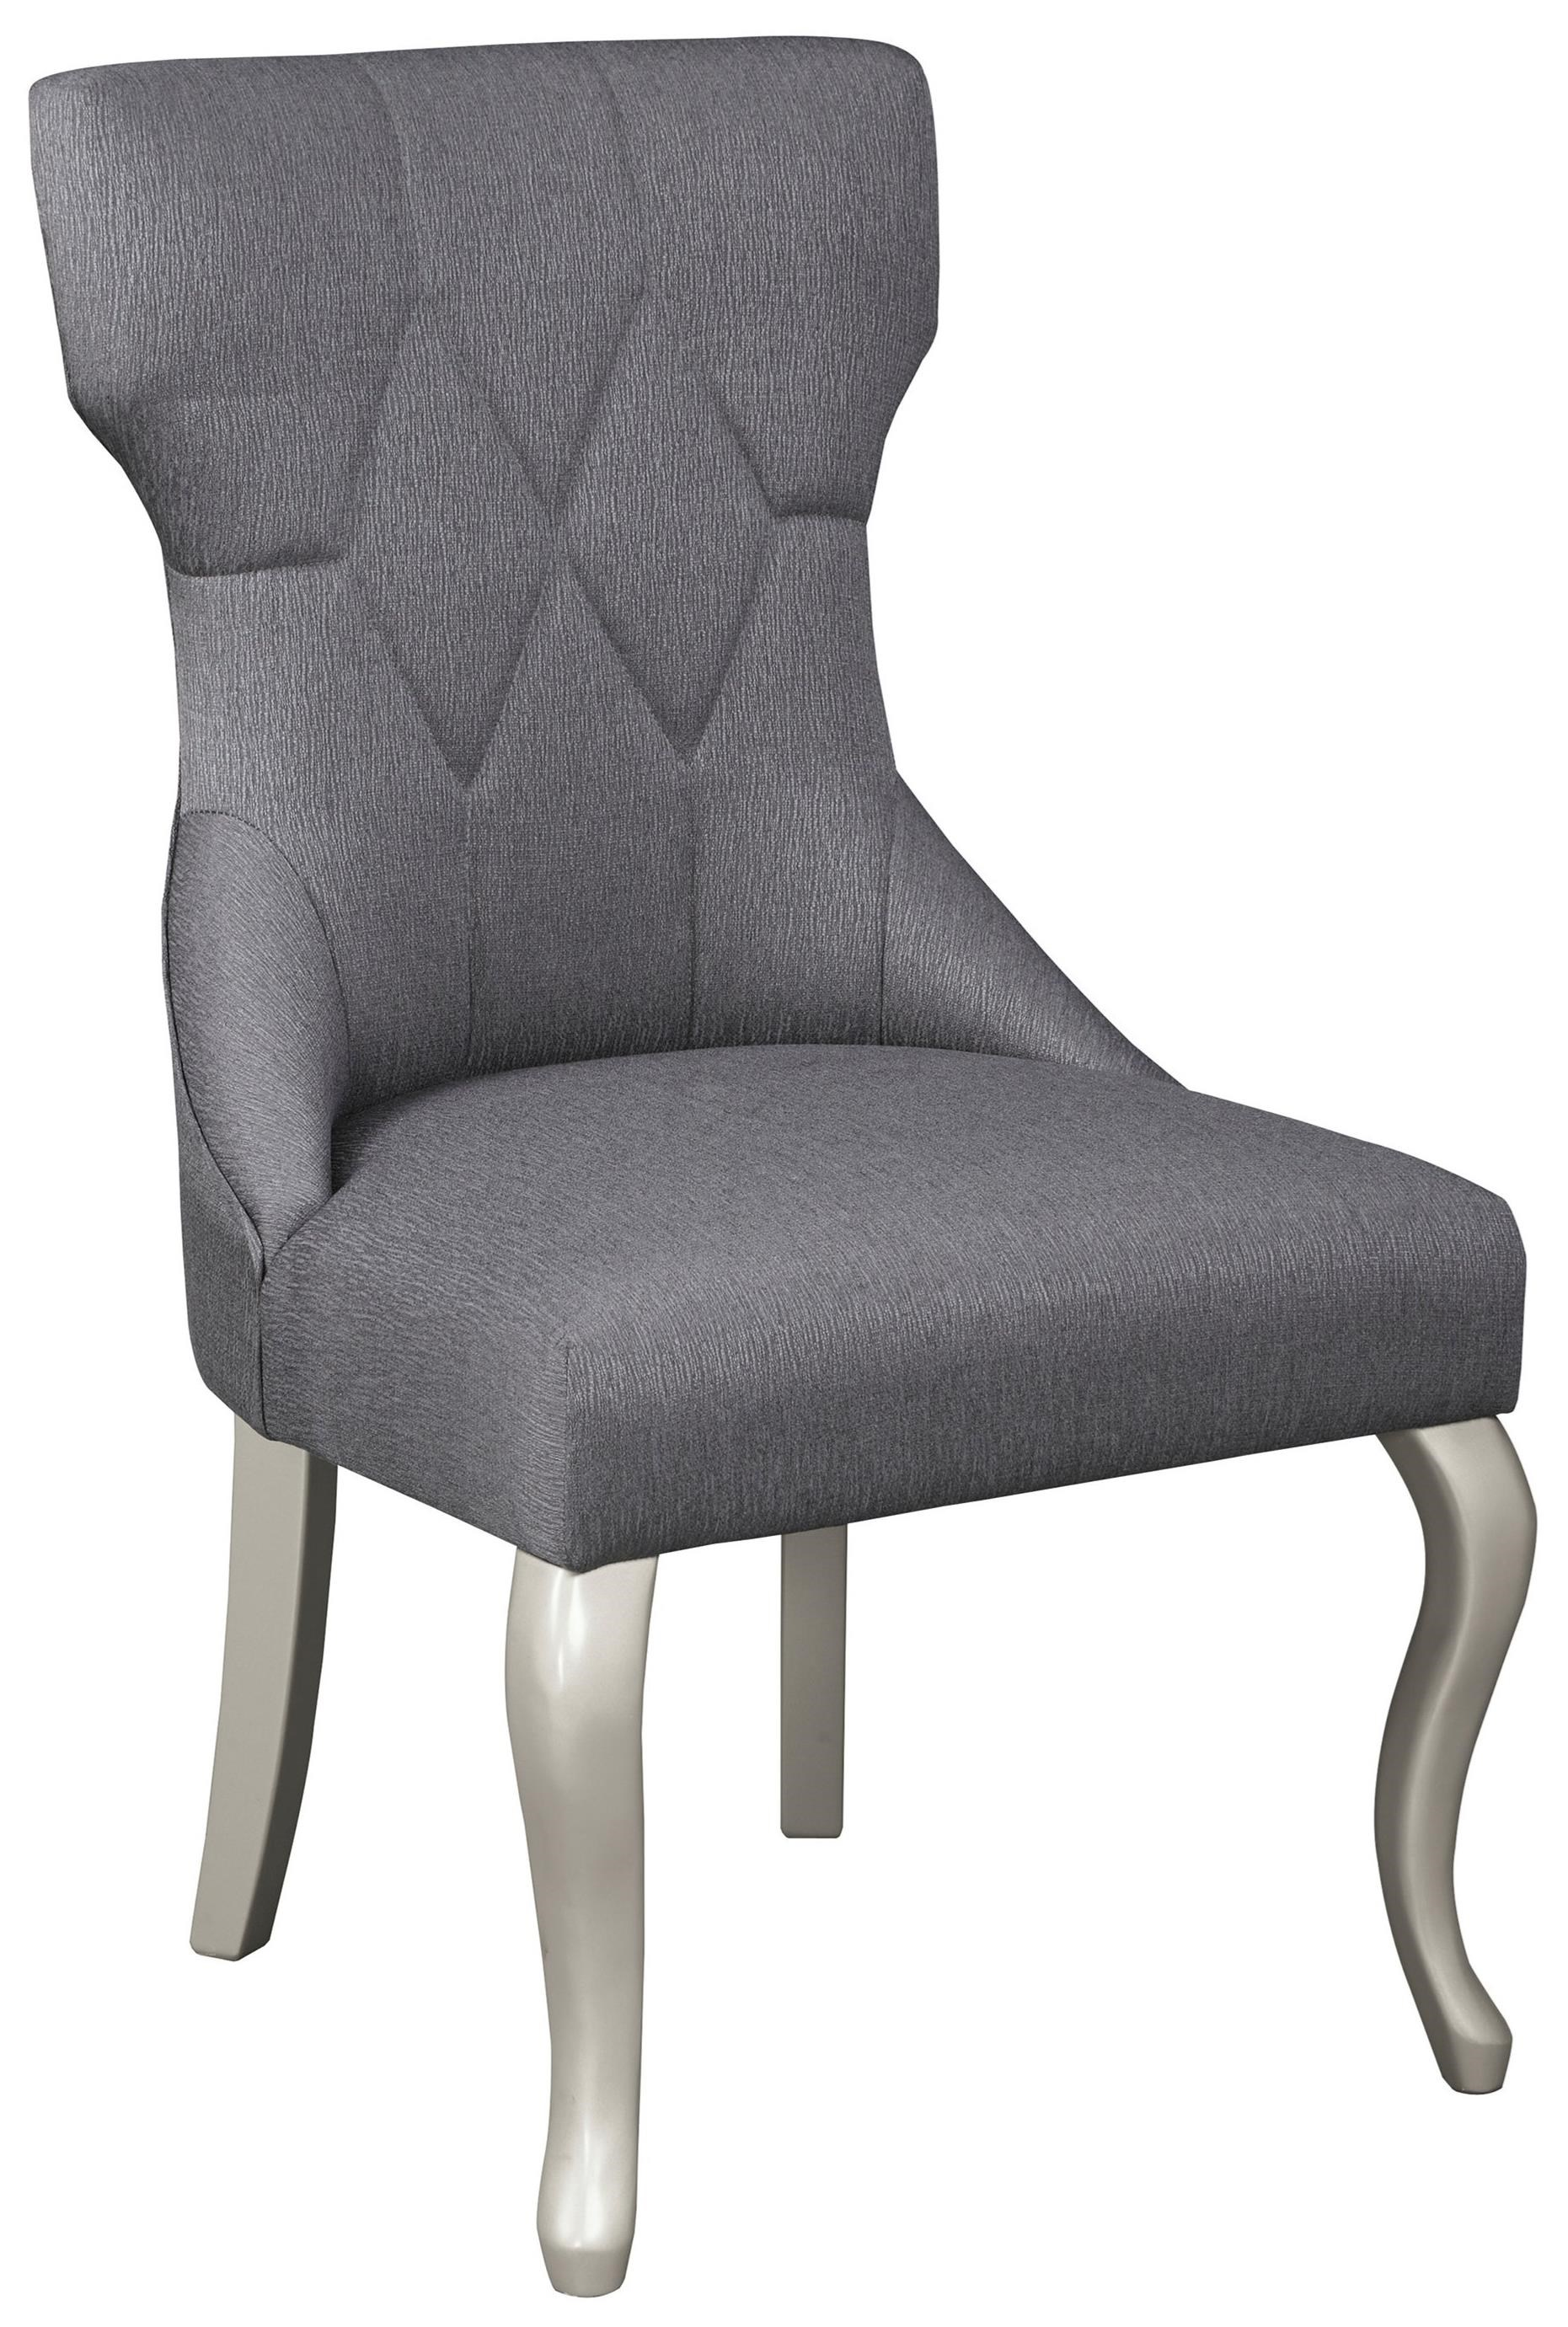 grey upholstered chair white legs black banquet covers for sale dining side with silver finish by